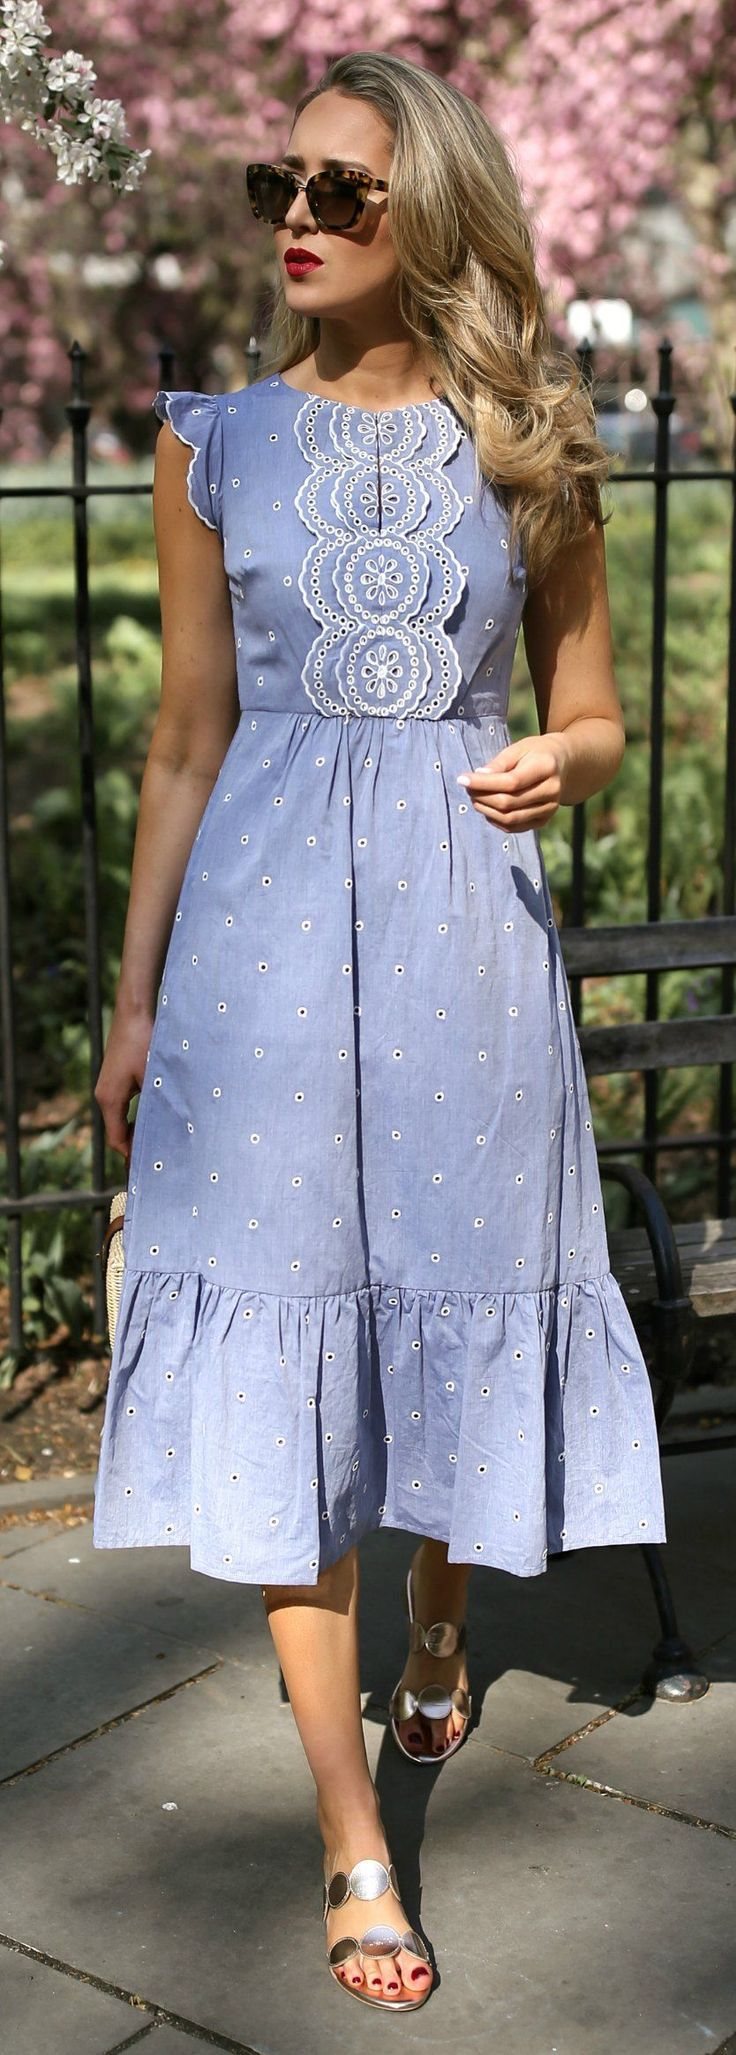 30 Dresses In 30 Days Garden Party Light Blue Contrast Broderie Anglaise Embroidery Midi Dress Light Wicker Box Bag Metall Elbise Giyim